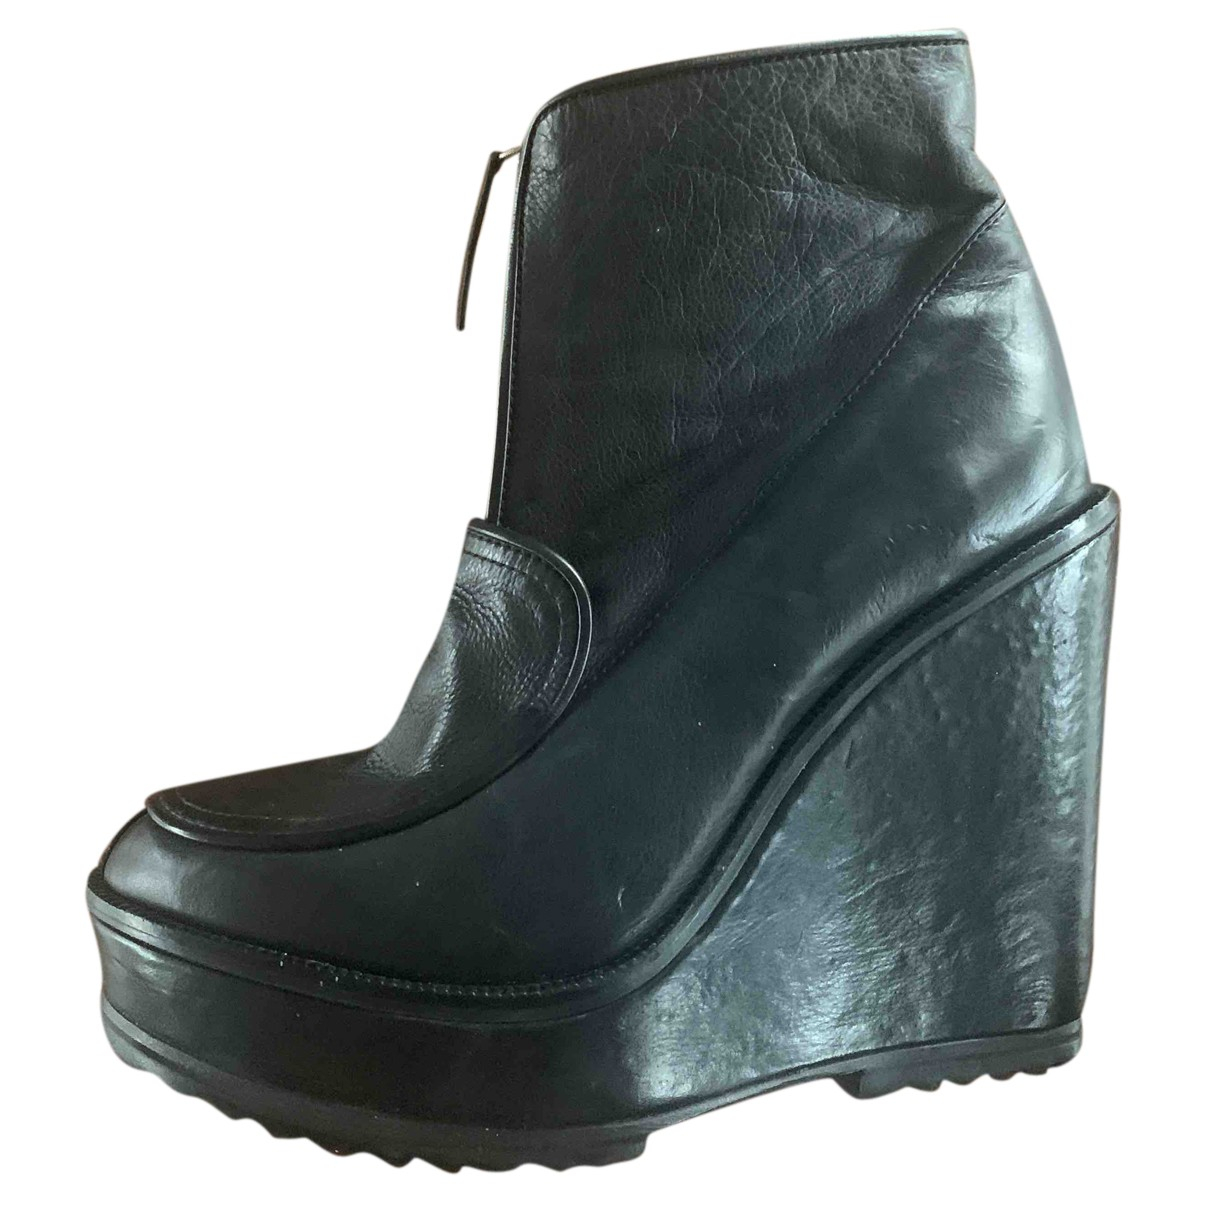 Lacoste N Black Leather Boots for Women 40 IT